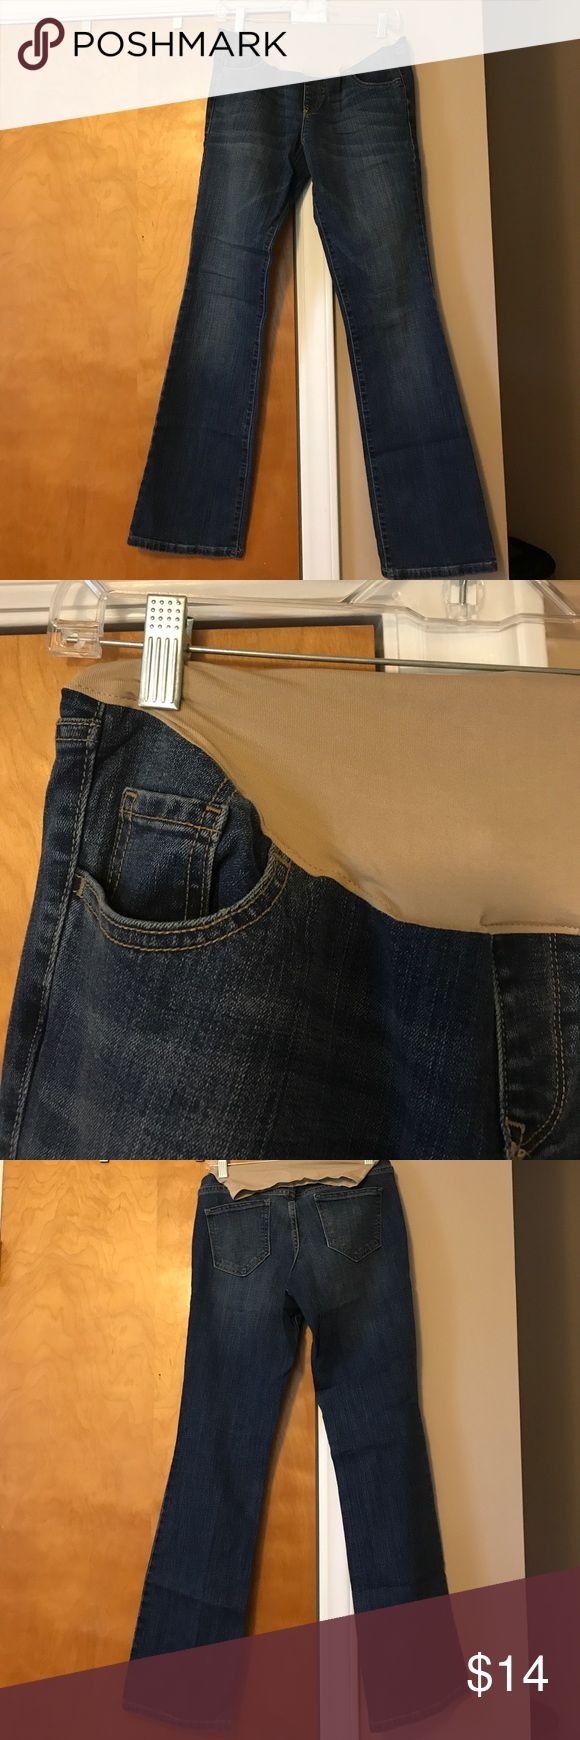 Old Navy Bootcut Maternity Jeans EEUC! Bootleg maternity jeans. Pockets are front and back that are functional. Stretchy over-the-belly waistband Old Navy Jeans Boot Cut